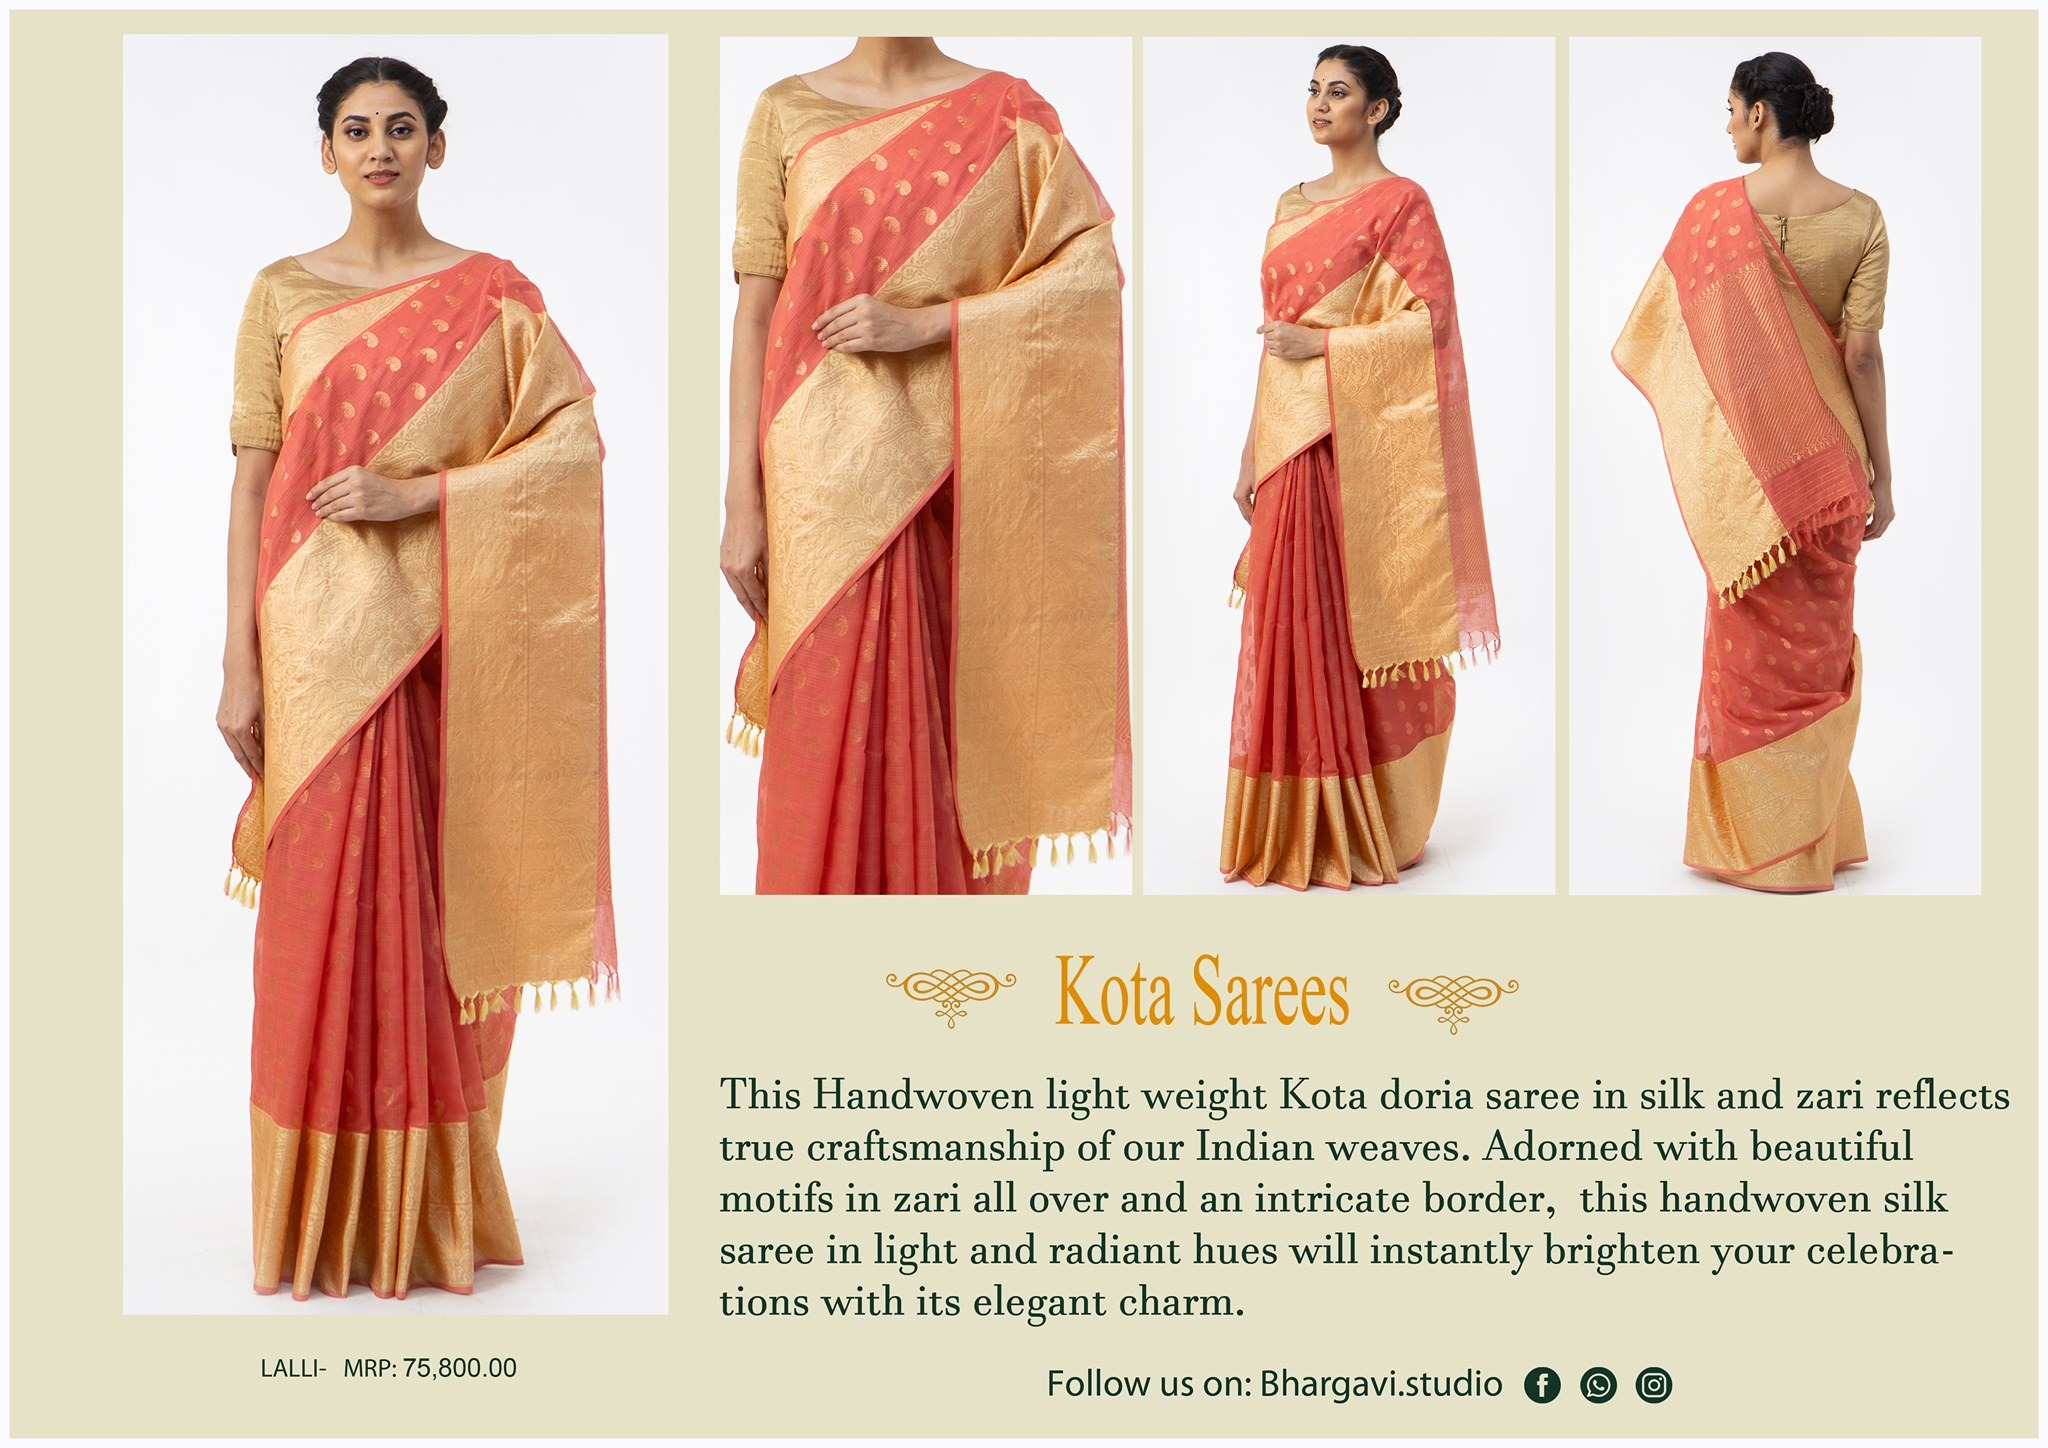 This handwoven light weight  kota doria saree in silk and zari reflects true craftsmanship of our indian waves. Adorned with beautiful motif in zari all over and intricate boarder.     2021-05-29